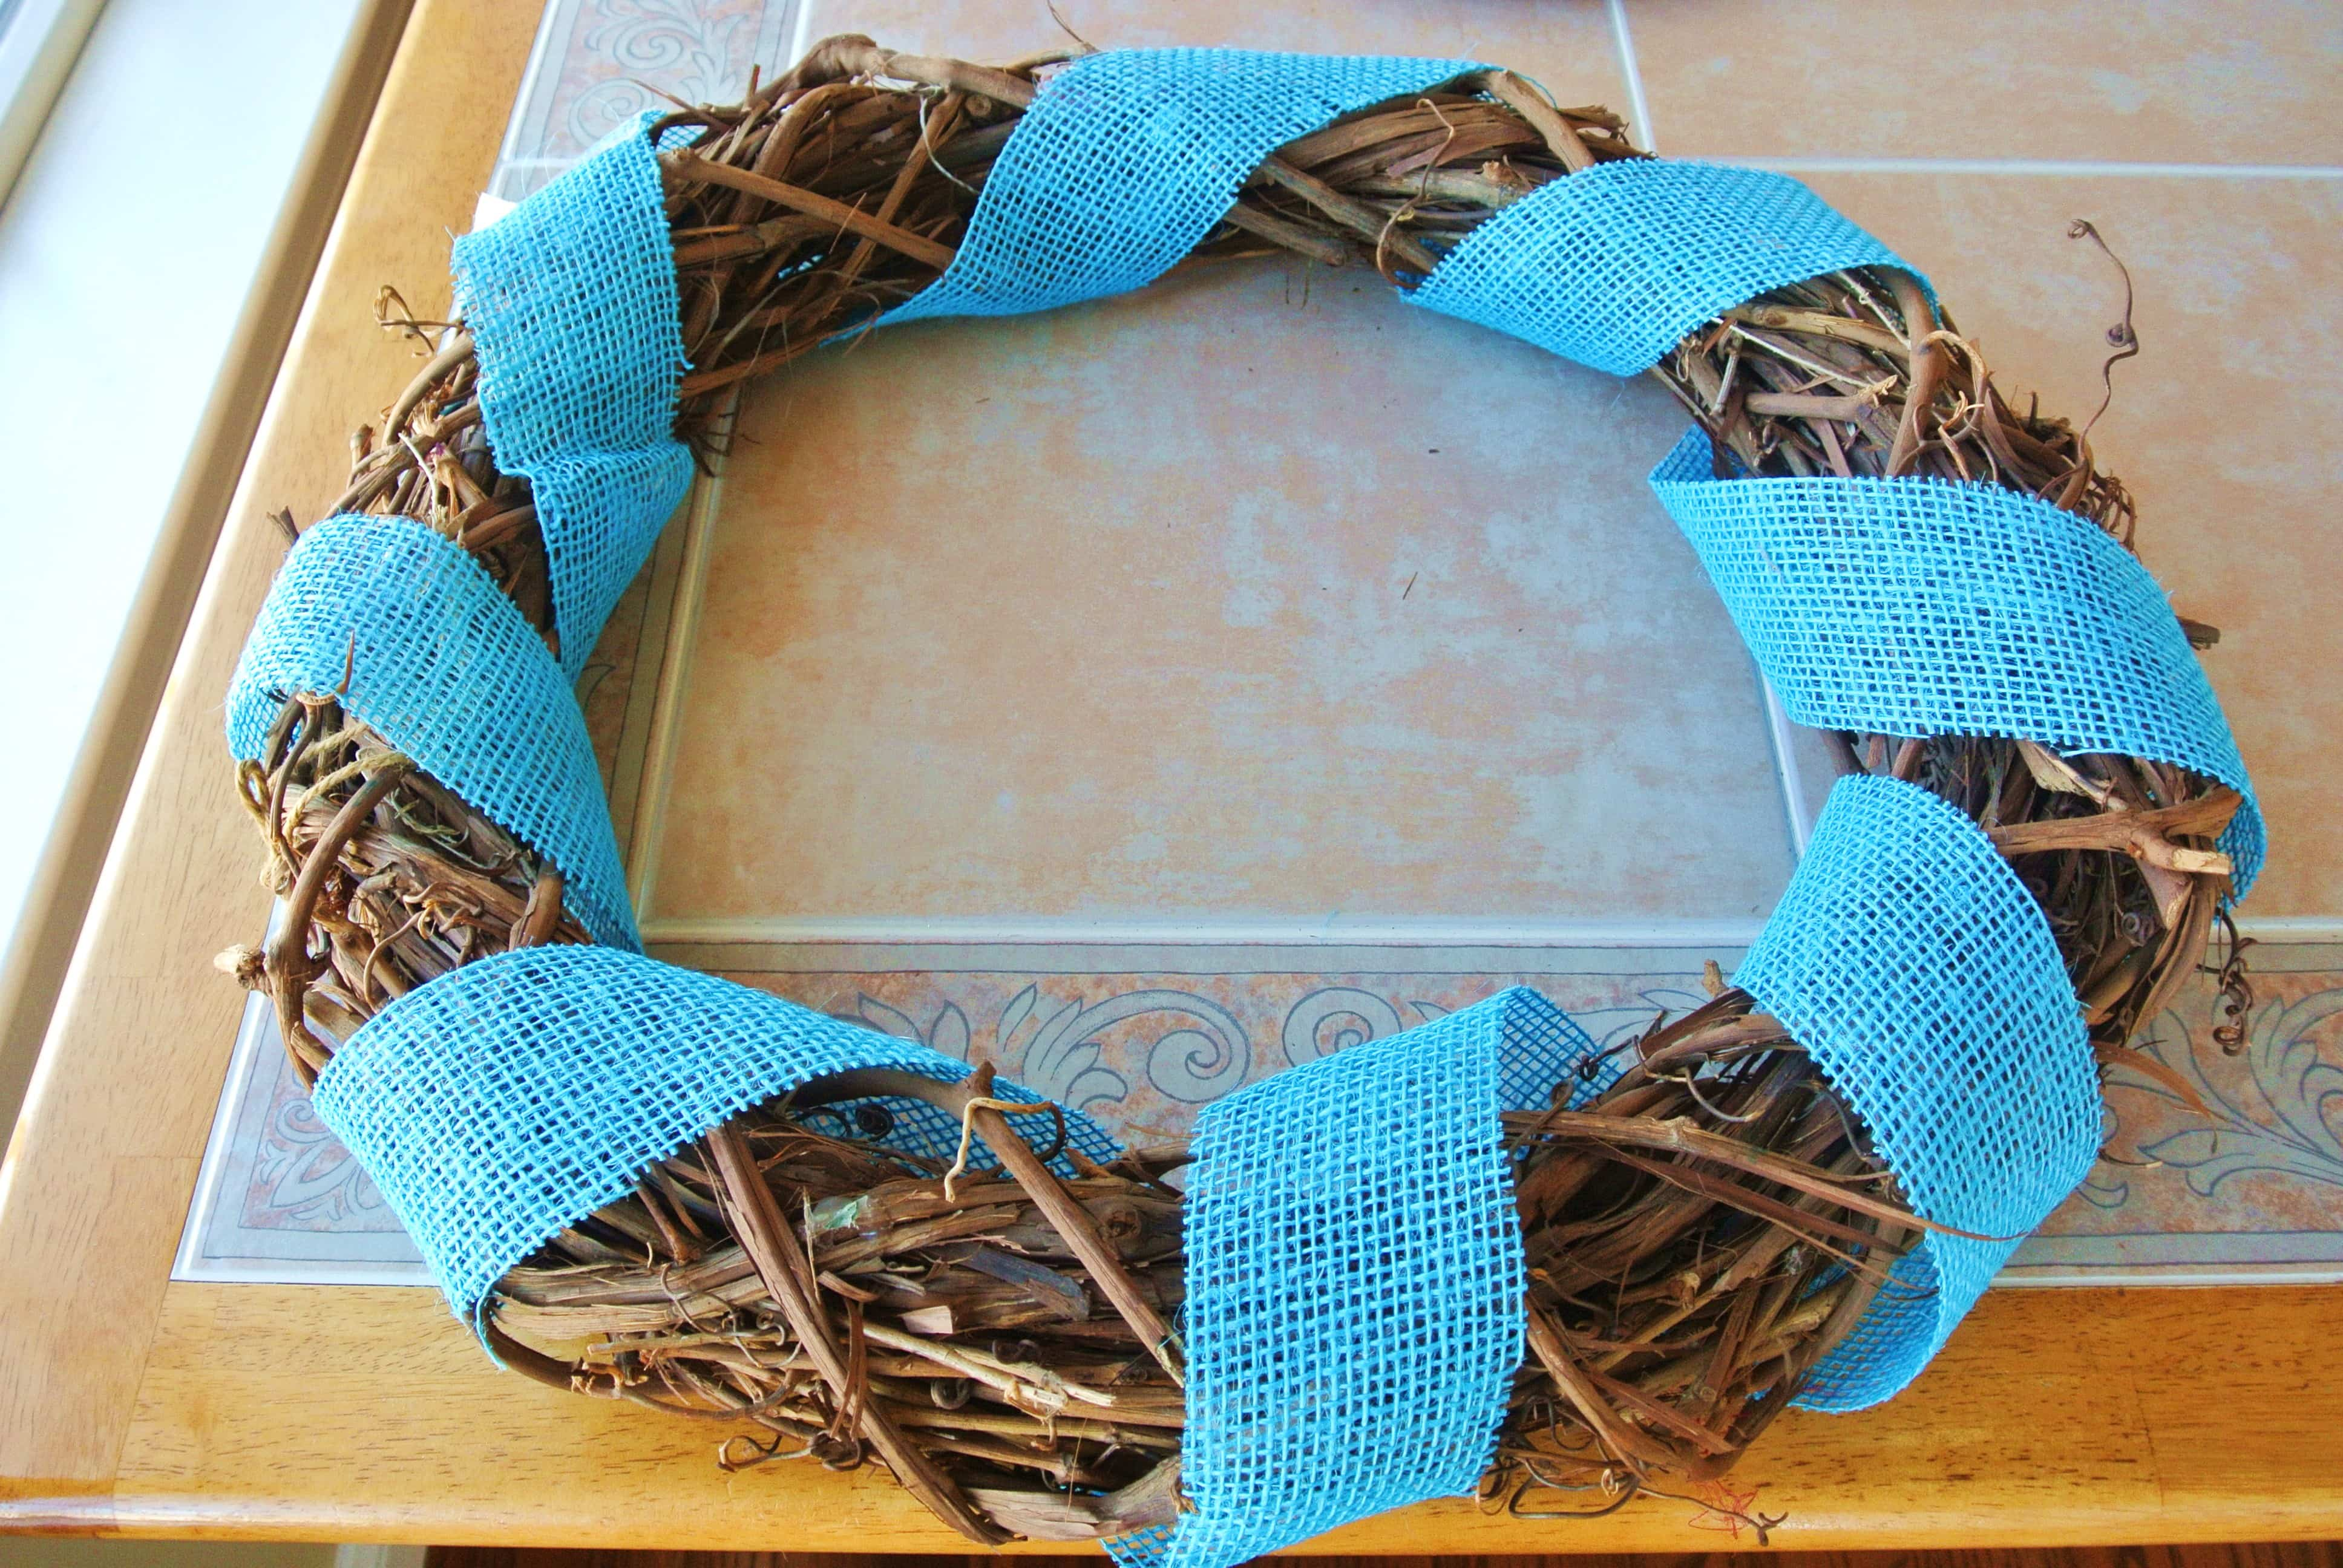 Blue burlap ribbon around wreath